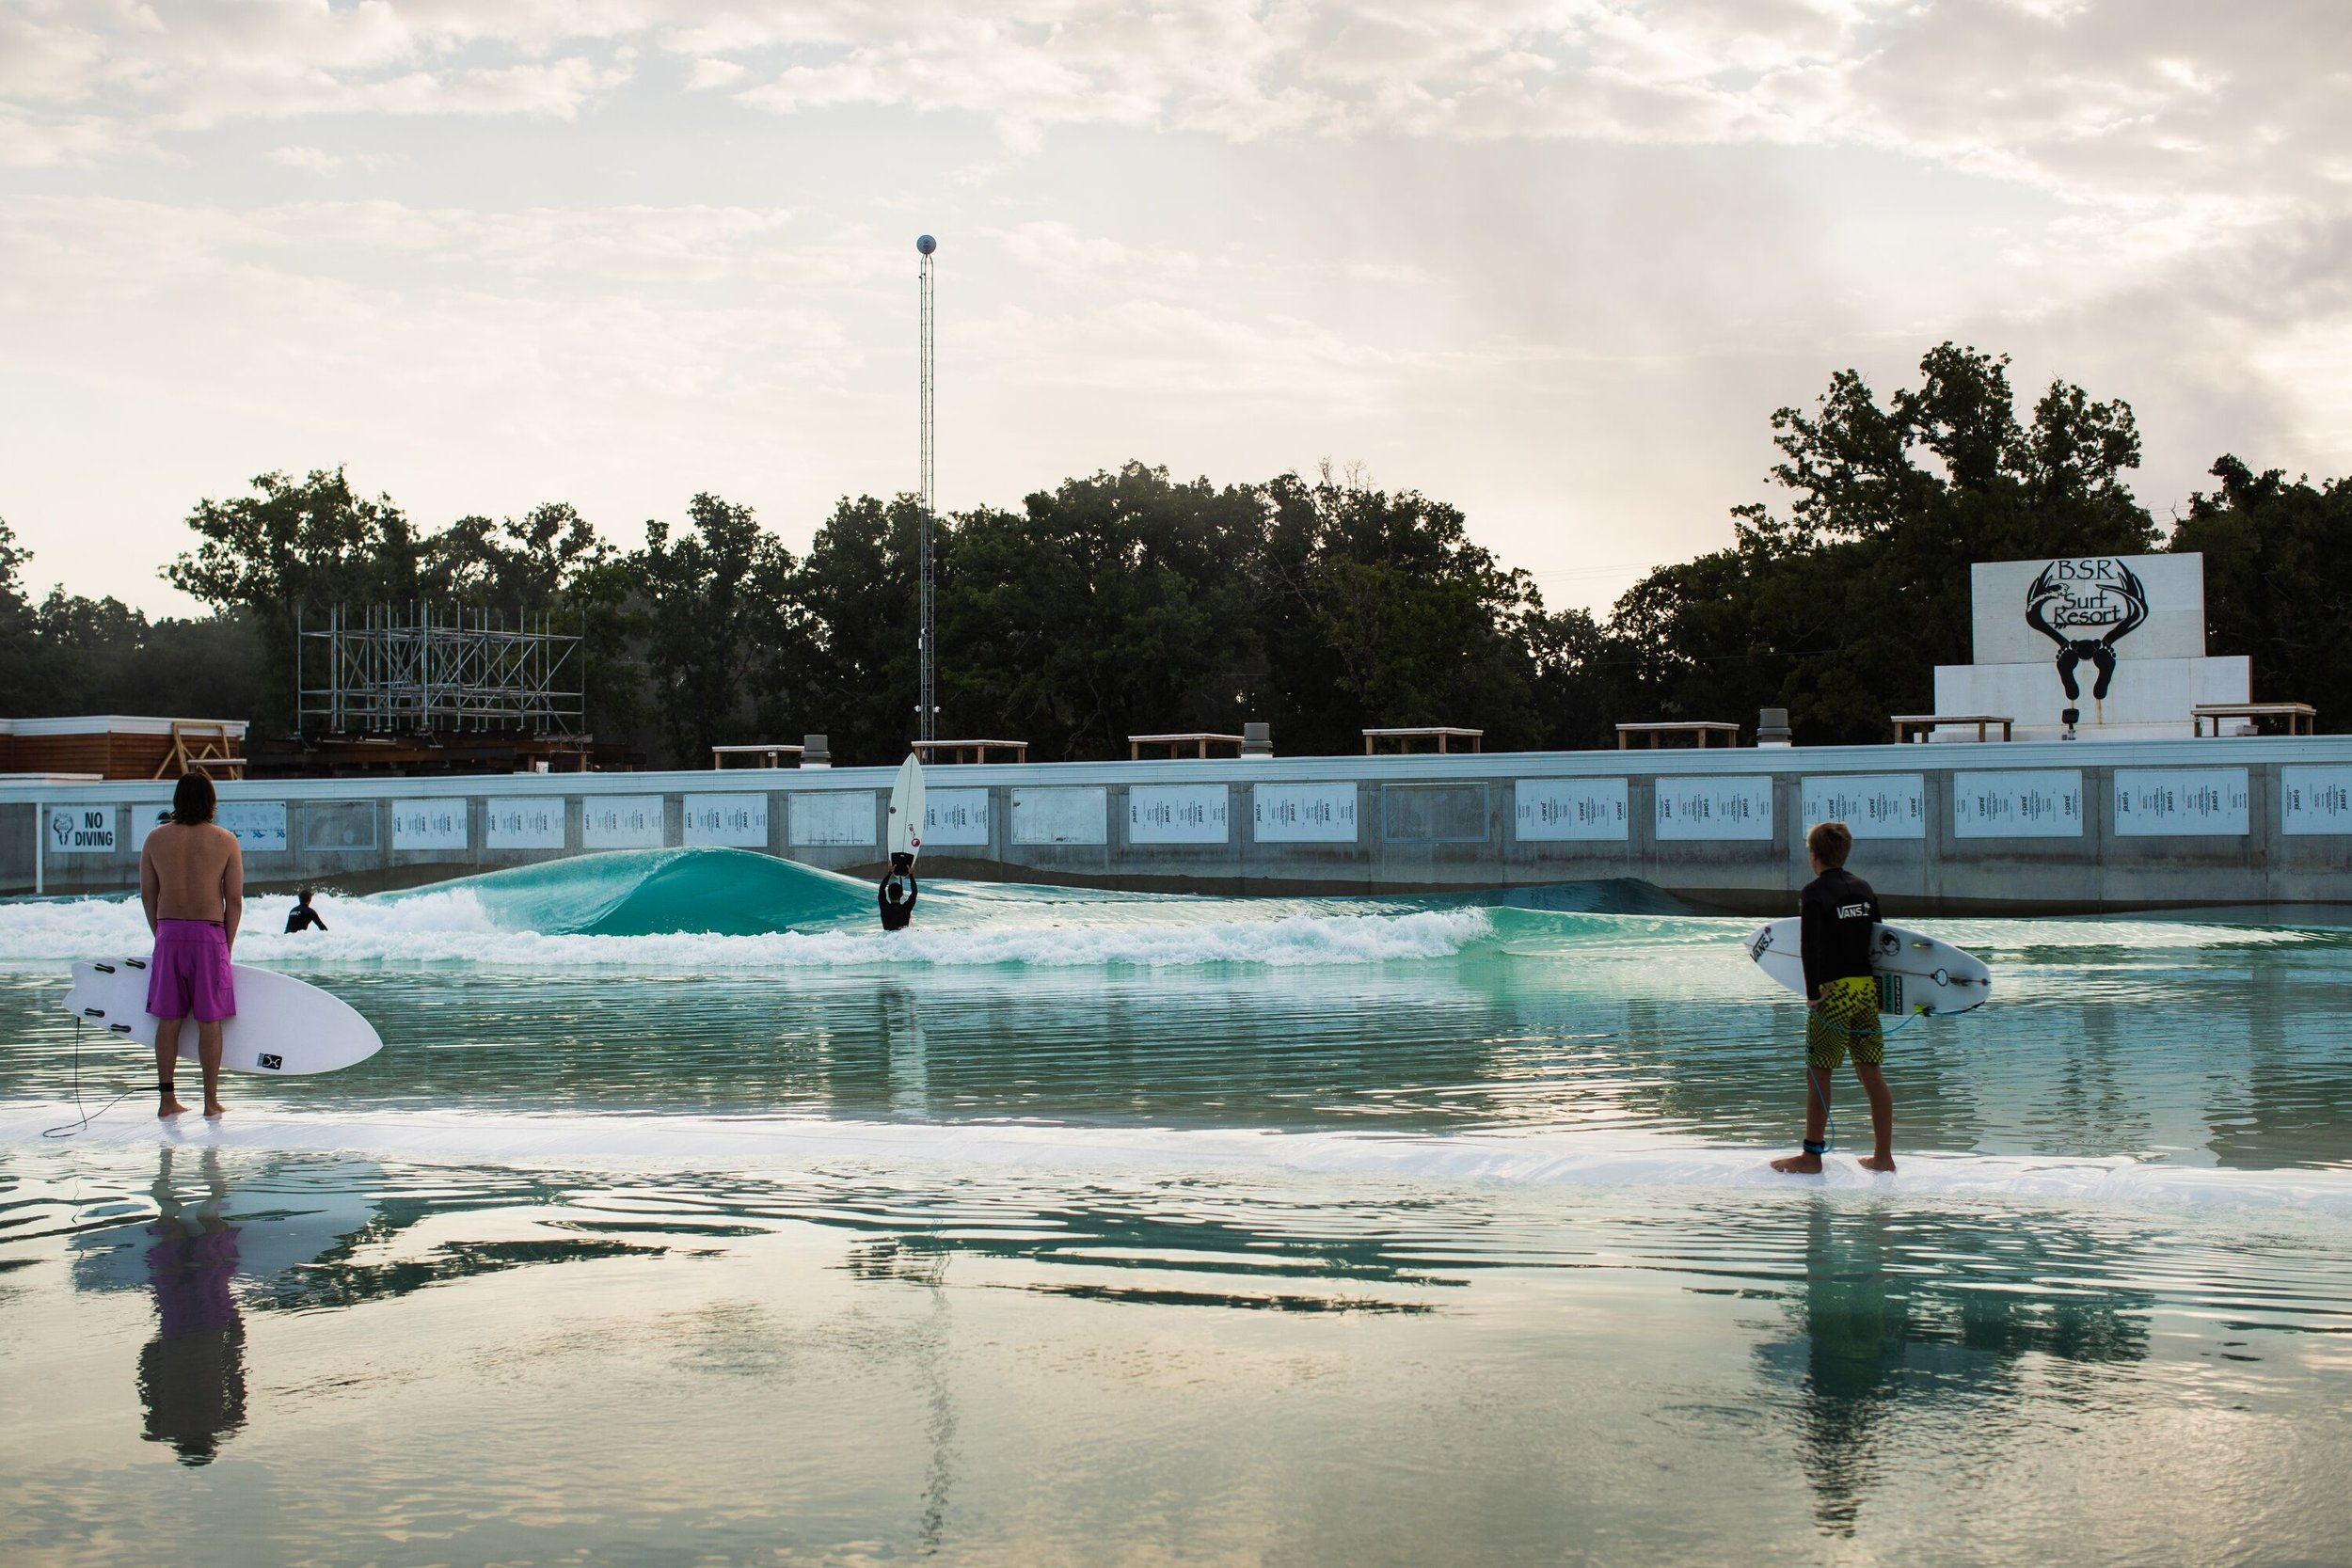 BSR Wave Park in Waco, Texas. PHOTO: Jimmicane